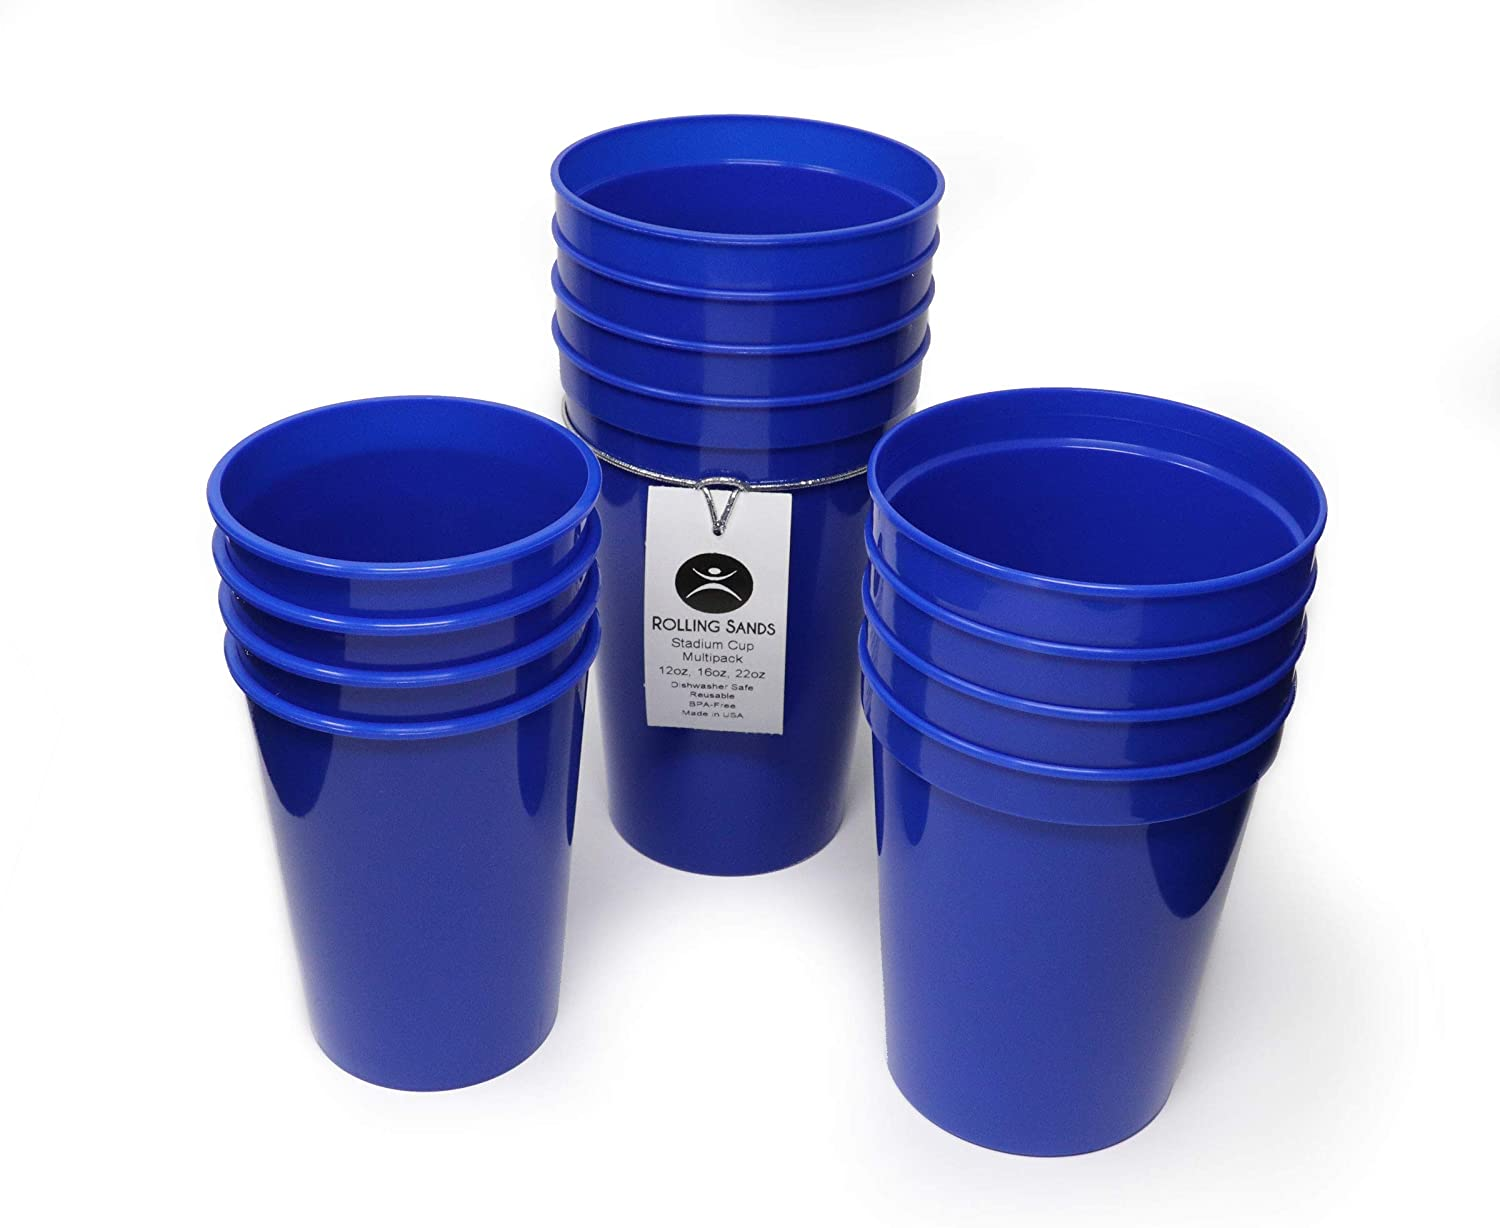 Rolling Sands 12 Pack Reusable Plastic Stadium Cups, Multipack of 3 Cup Sizes - 12oz, 16oz, 22oz – Made in USA, BPA-Free, Dishwasher Safe Plastic Tumblers - Set Includes 4 Blue Cups of Each Size